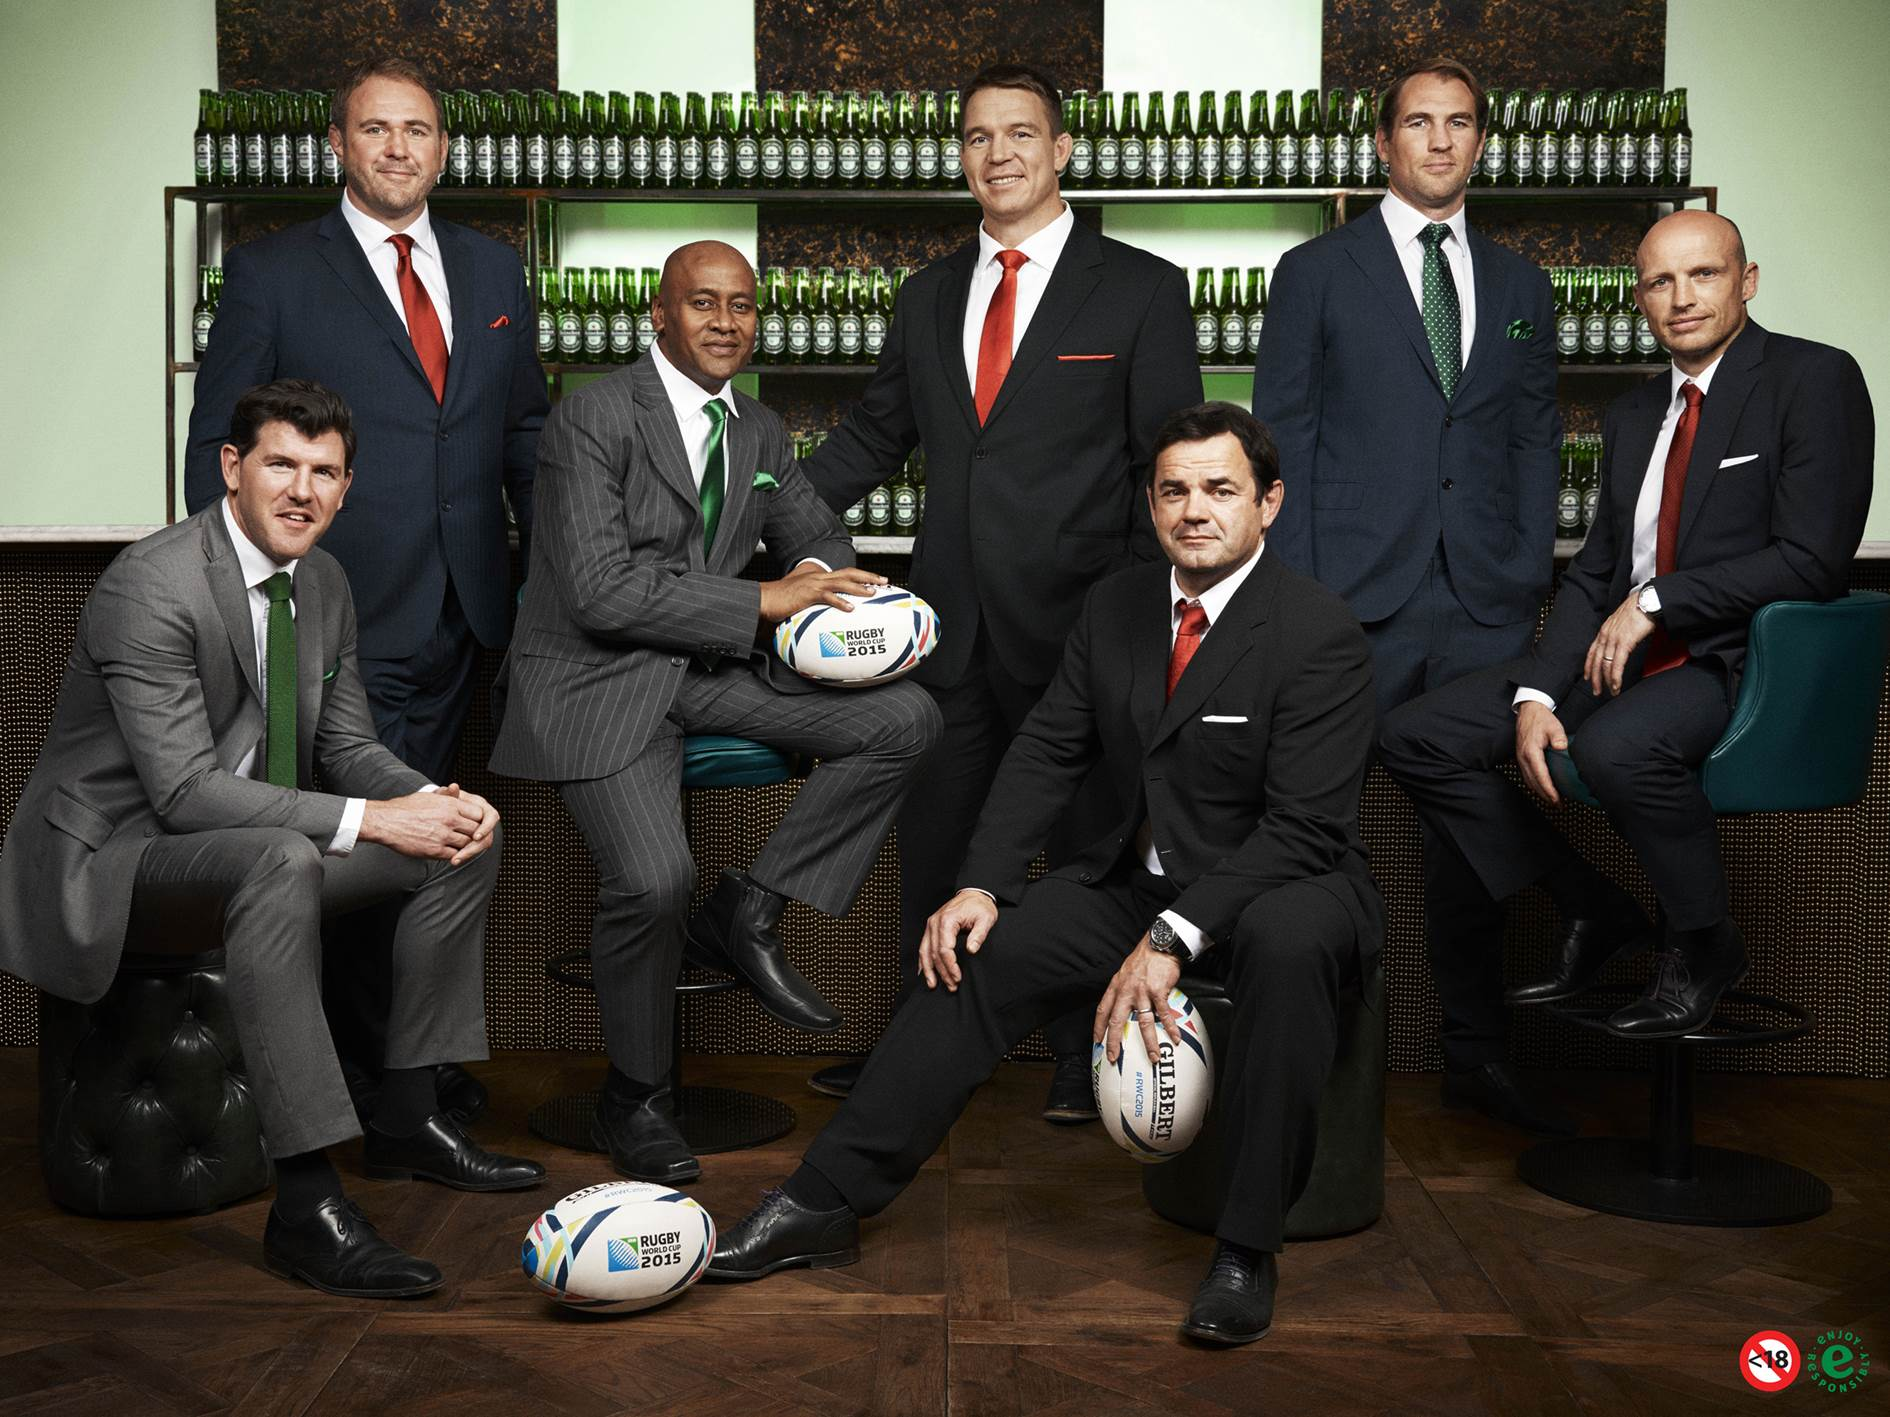 Shane Horgan, Scott Quinnell, Jonah Lomu, John Smit, Will Carling, Rocky Elsom and Matt Dawson have been announced as Heineken's Rugby World Cup 2015 legends.